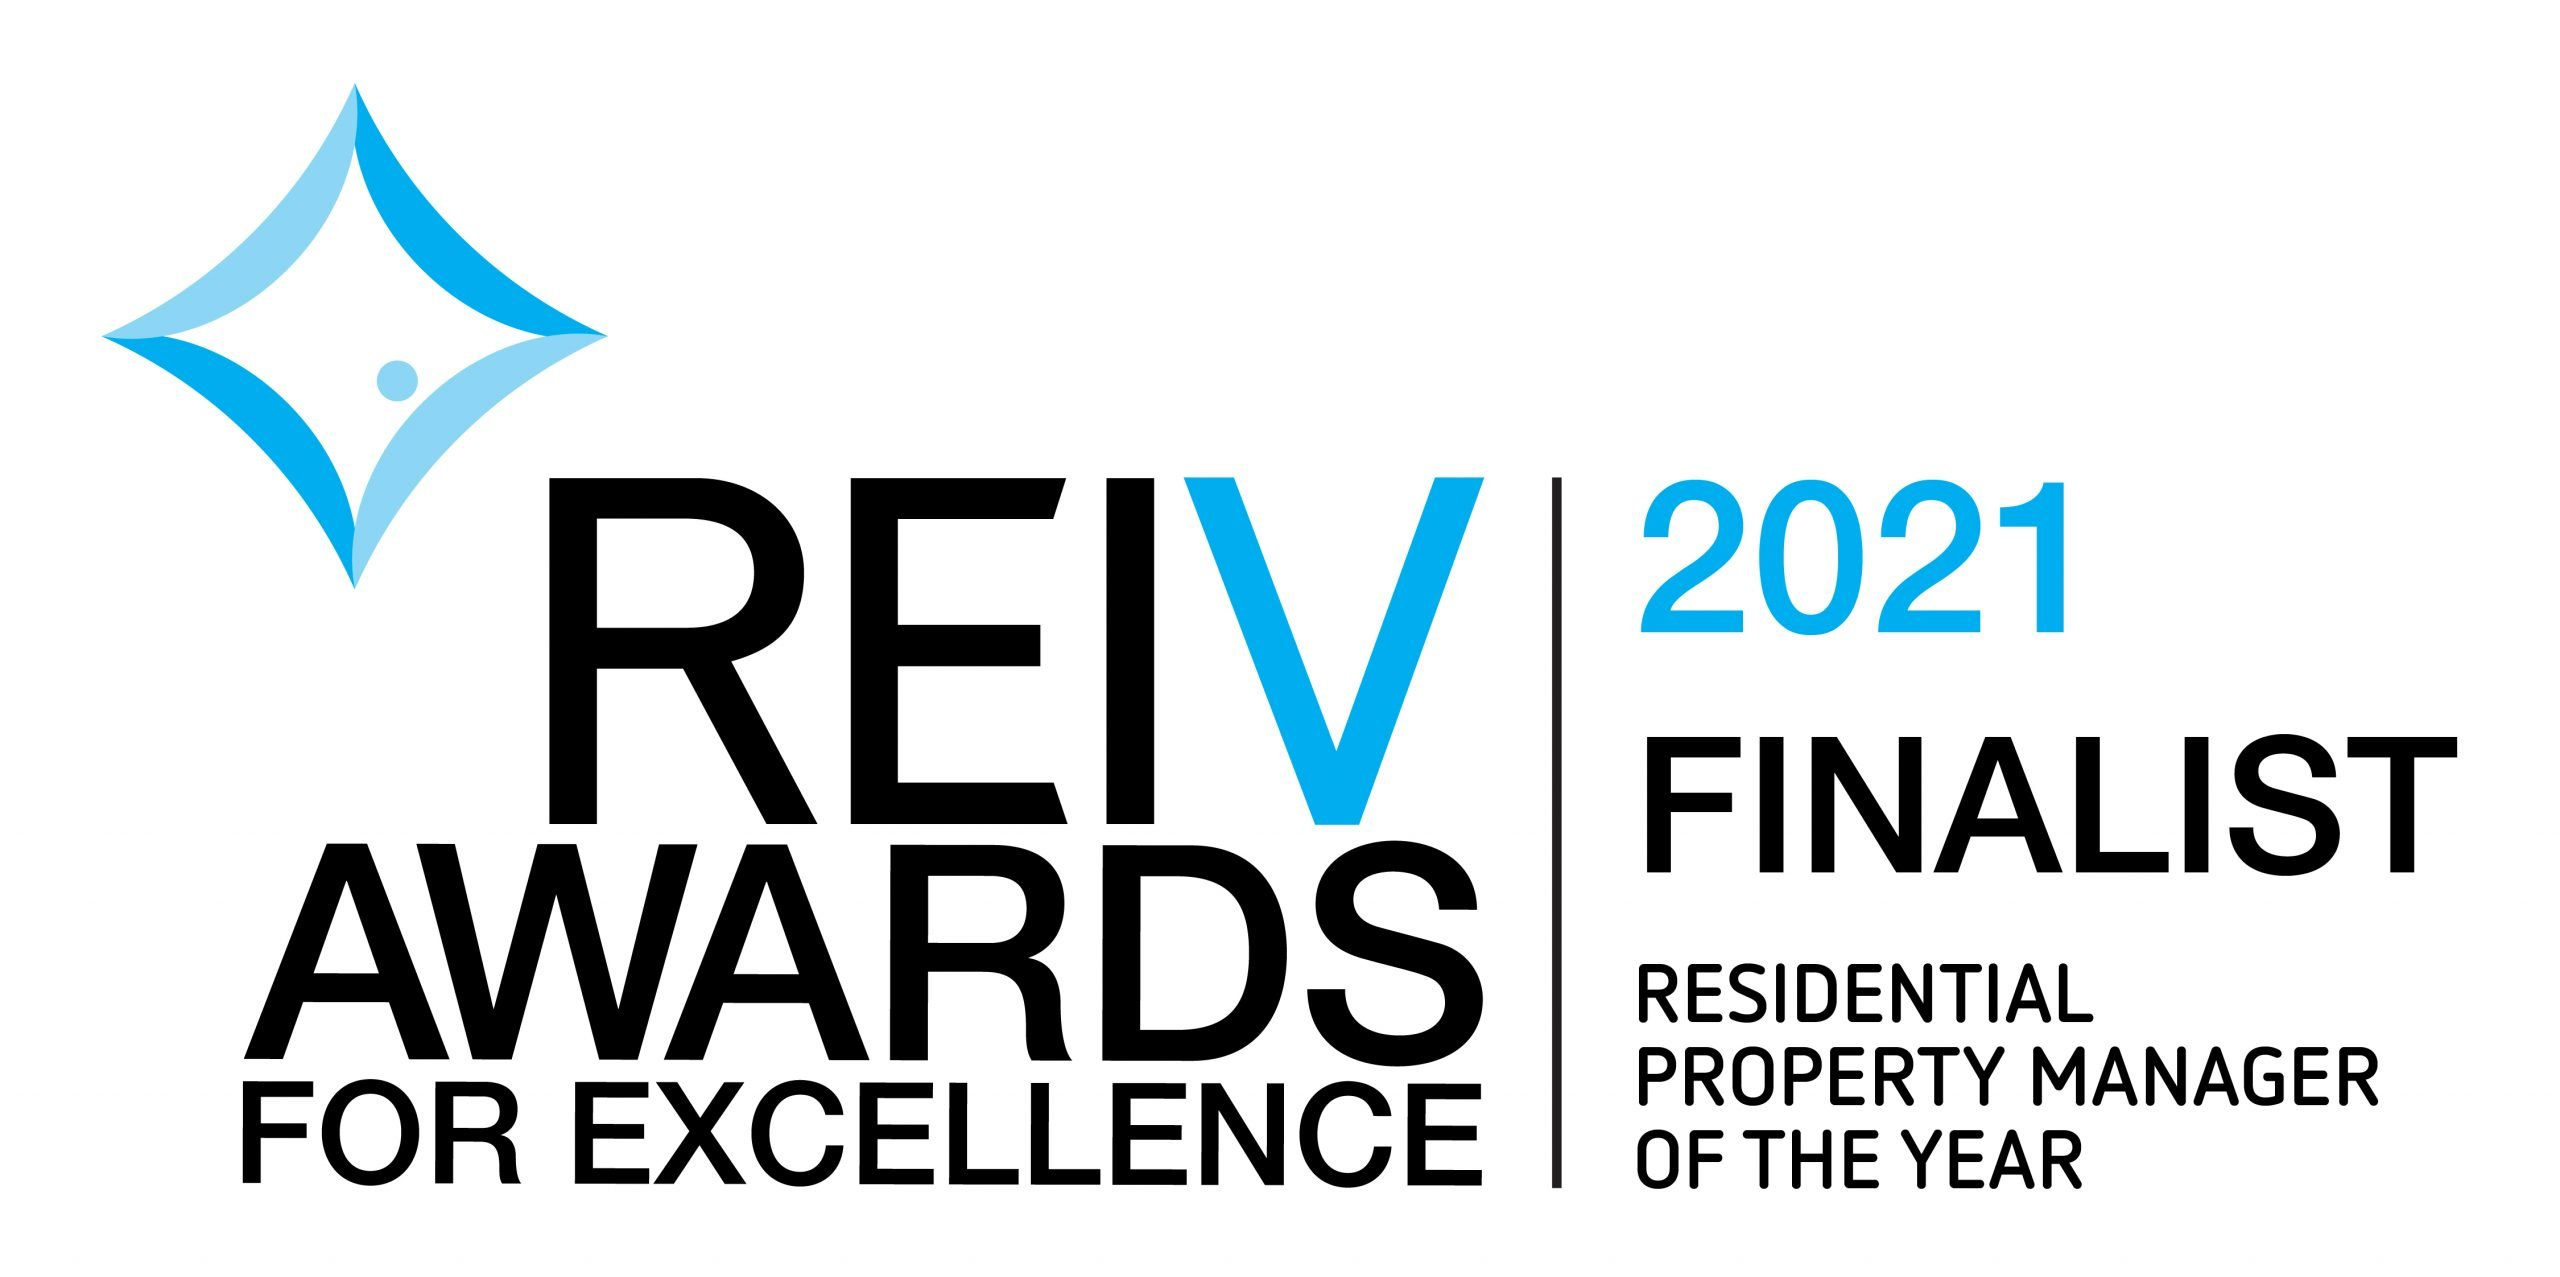 Residential Property Manager REIV Finalist